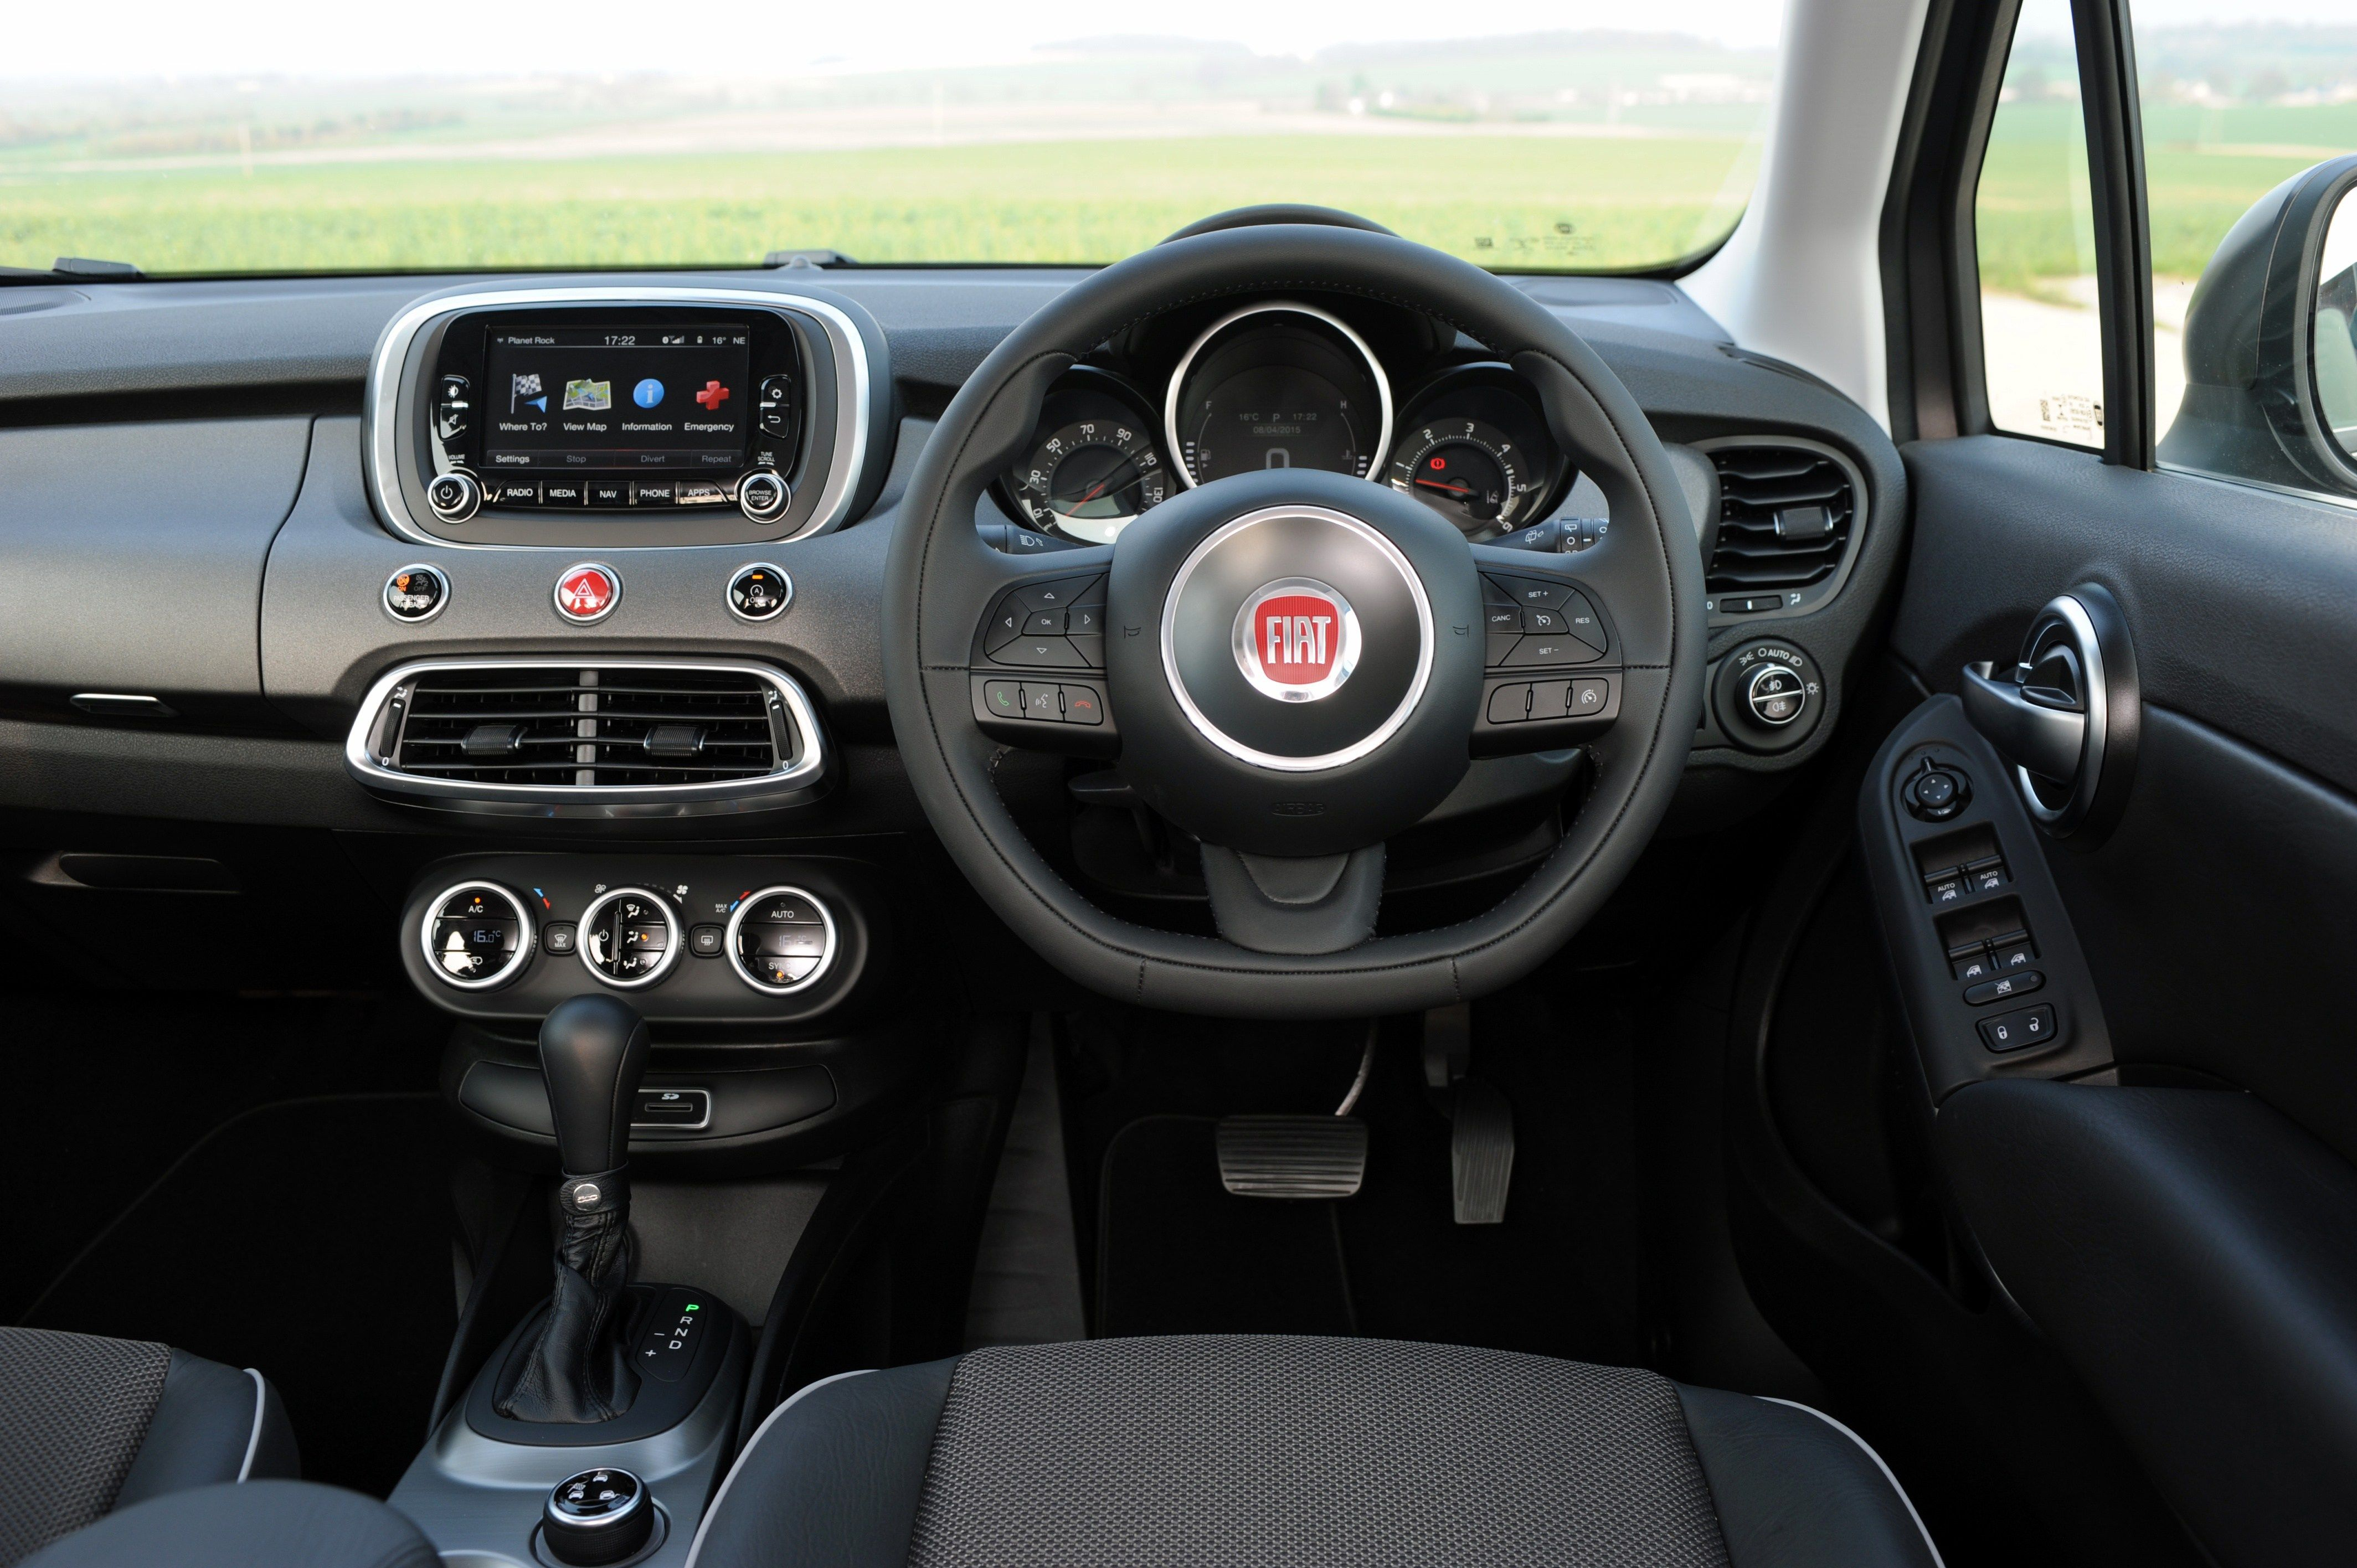 2014 Fiat 500l Trekking Adventure In Style Fiat Usa Only